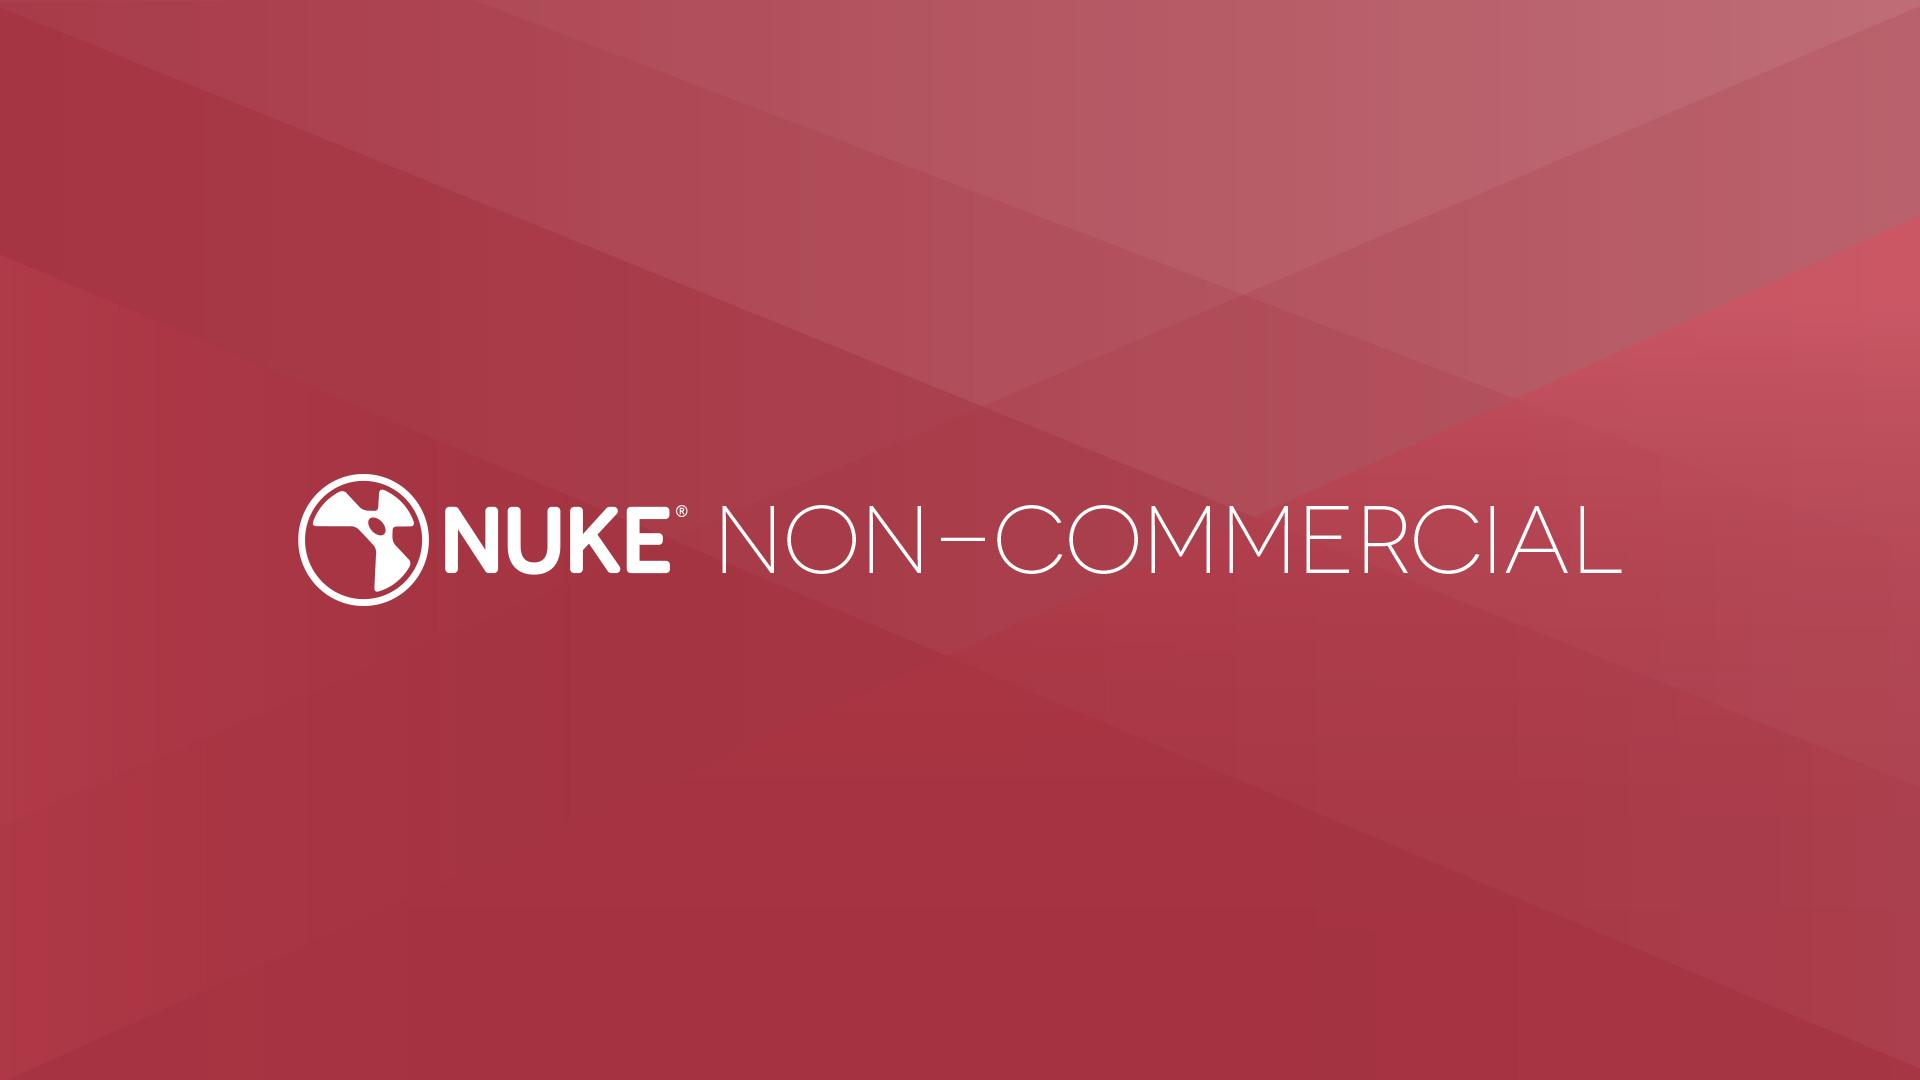 Free compositing and editorial software from Foundry - Nuke